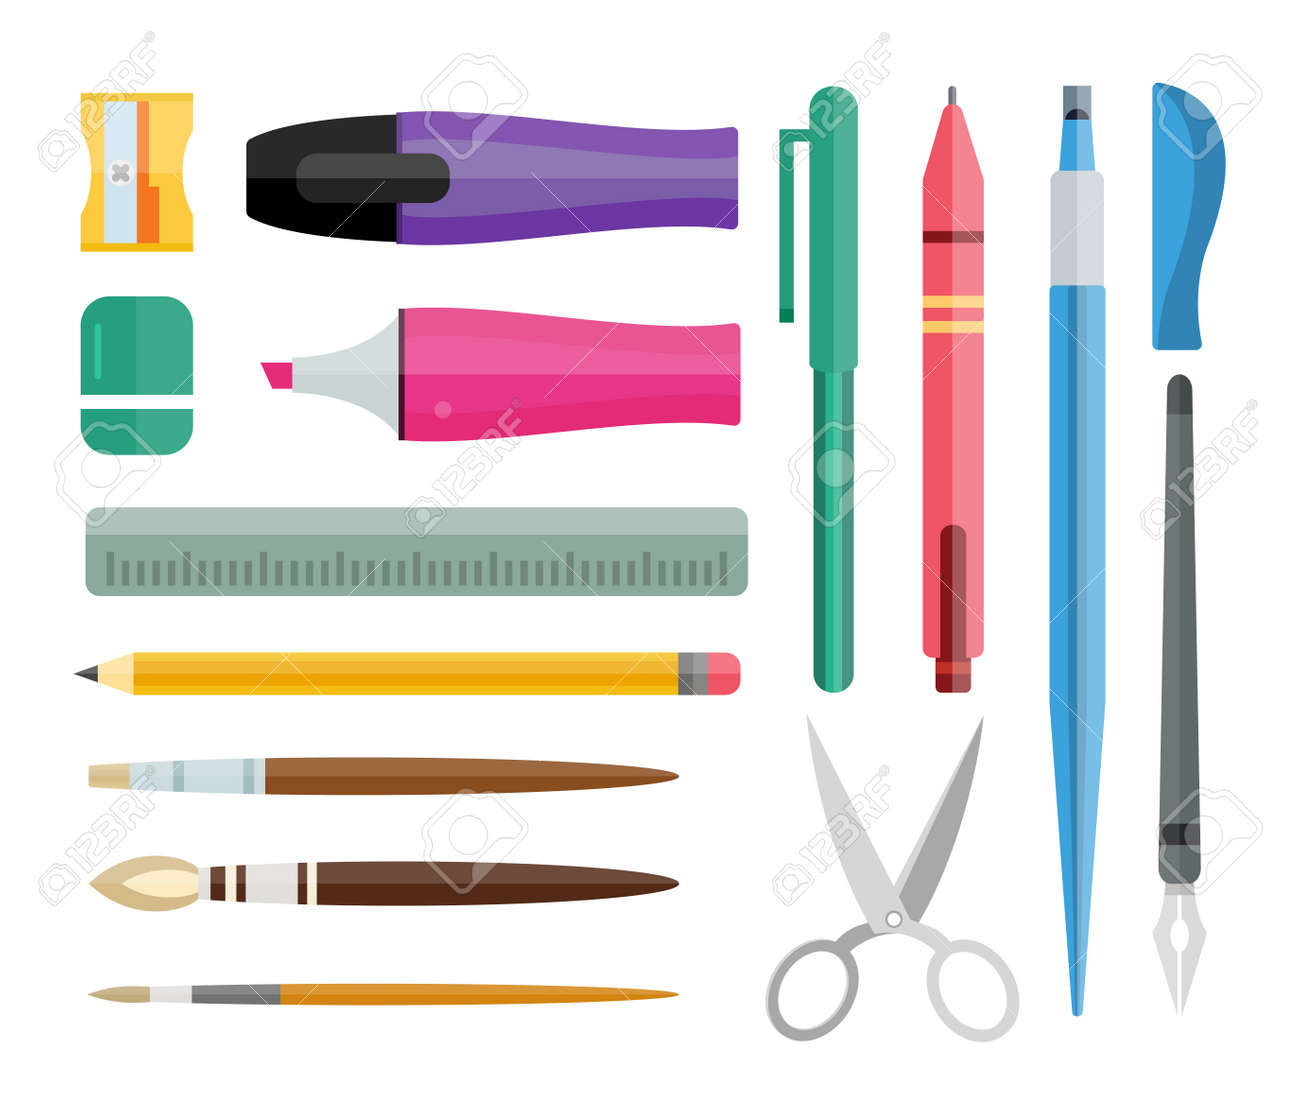 office drawing tools. flat stationery drawing tools pen set paintbrushes felttip pencil and office